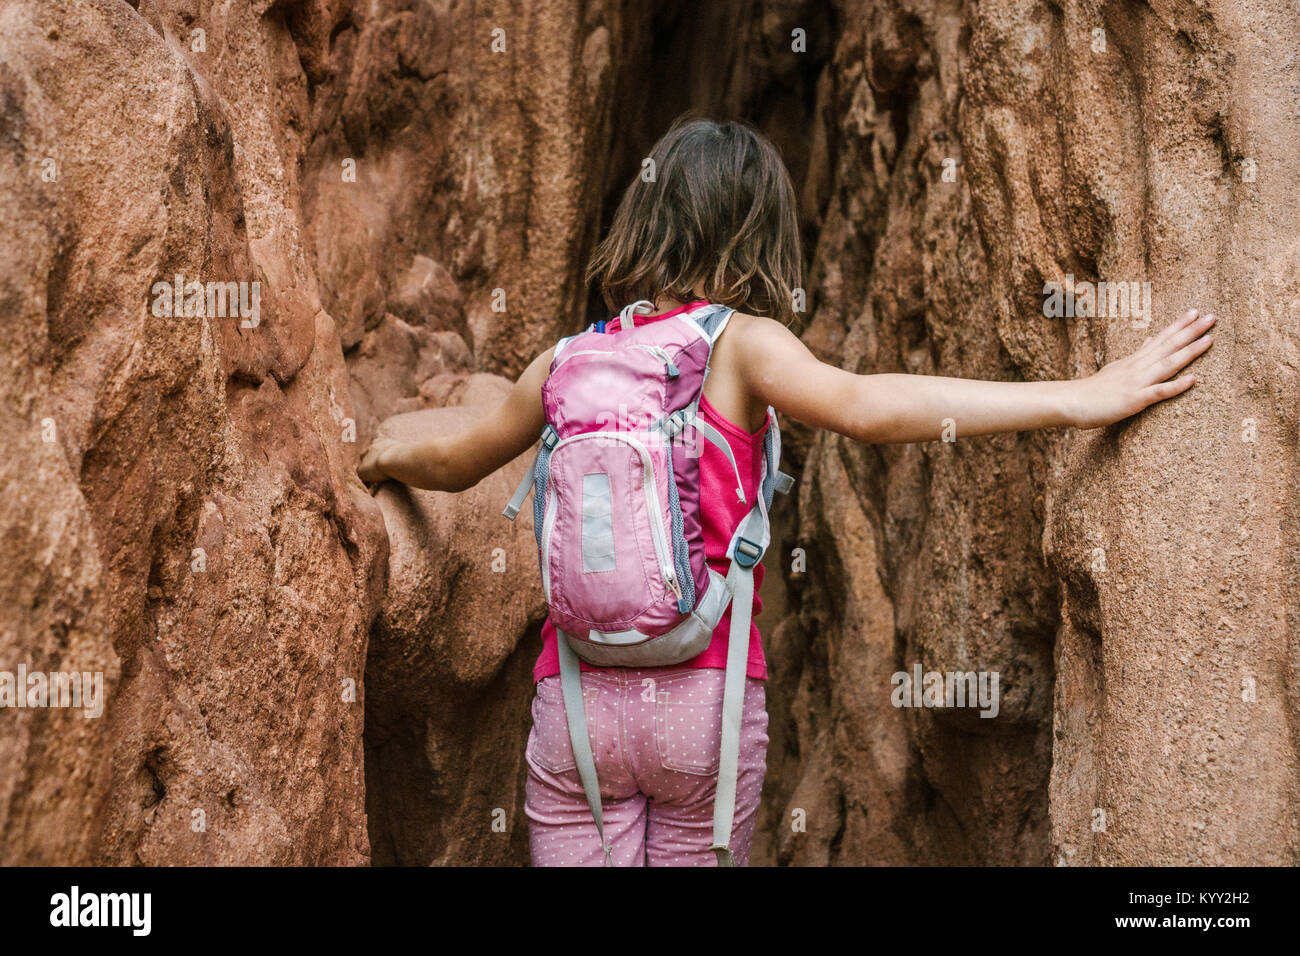 Rear view of girl with backpack exploring amidst rock formations - Stock Image